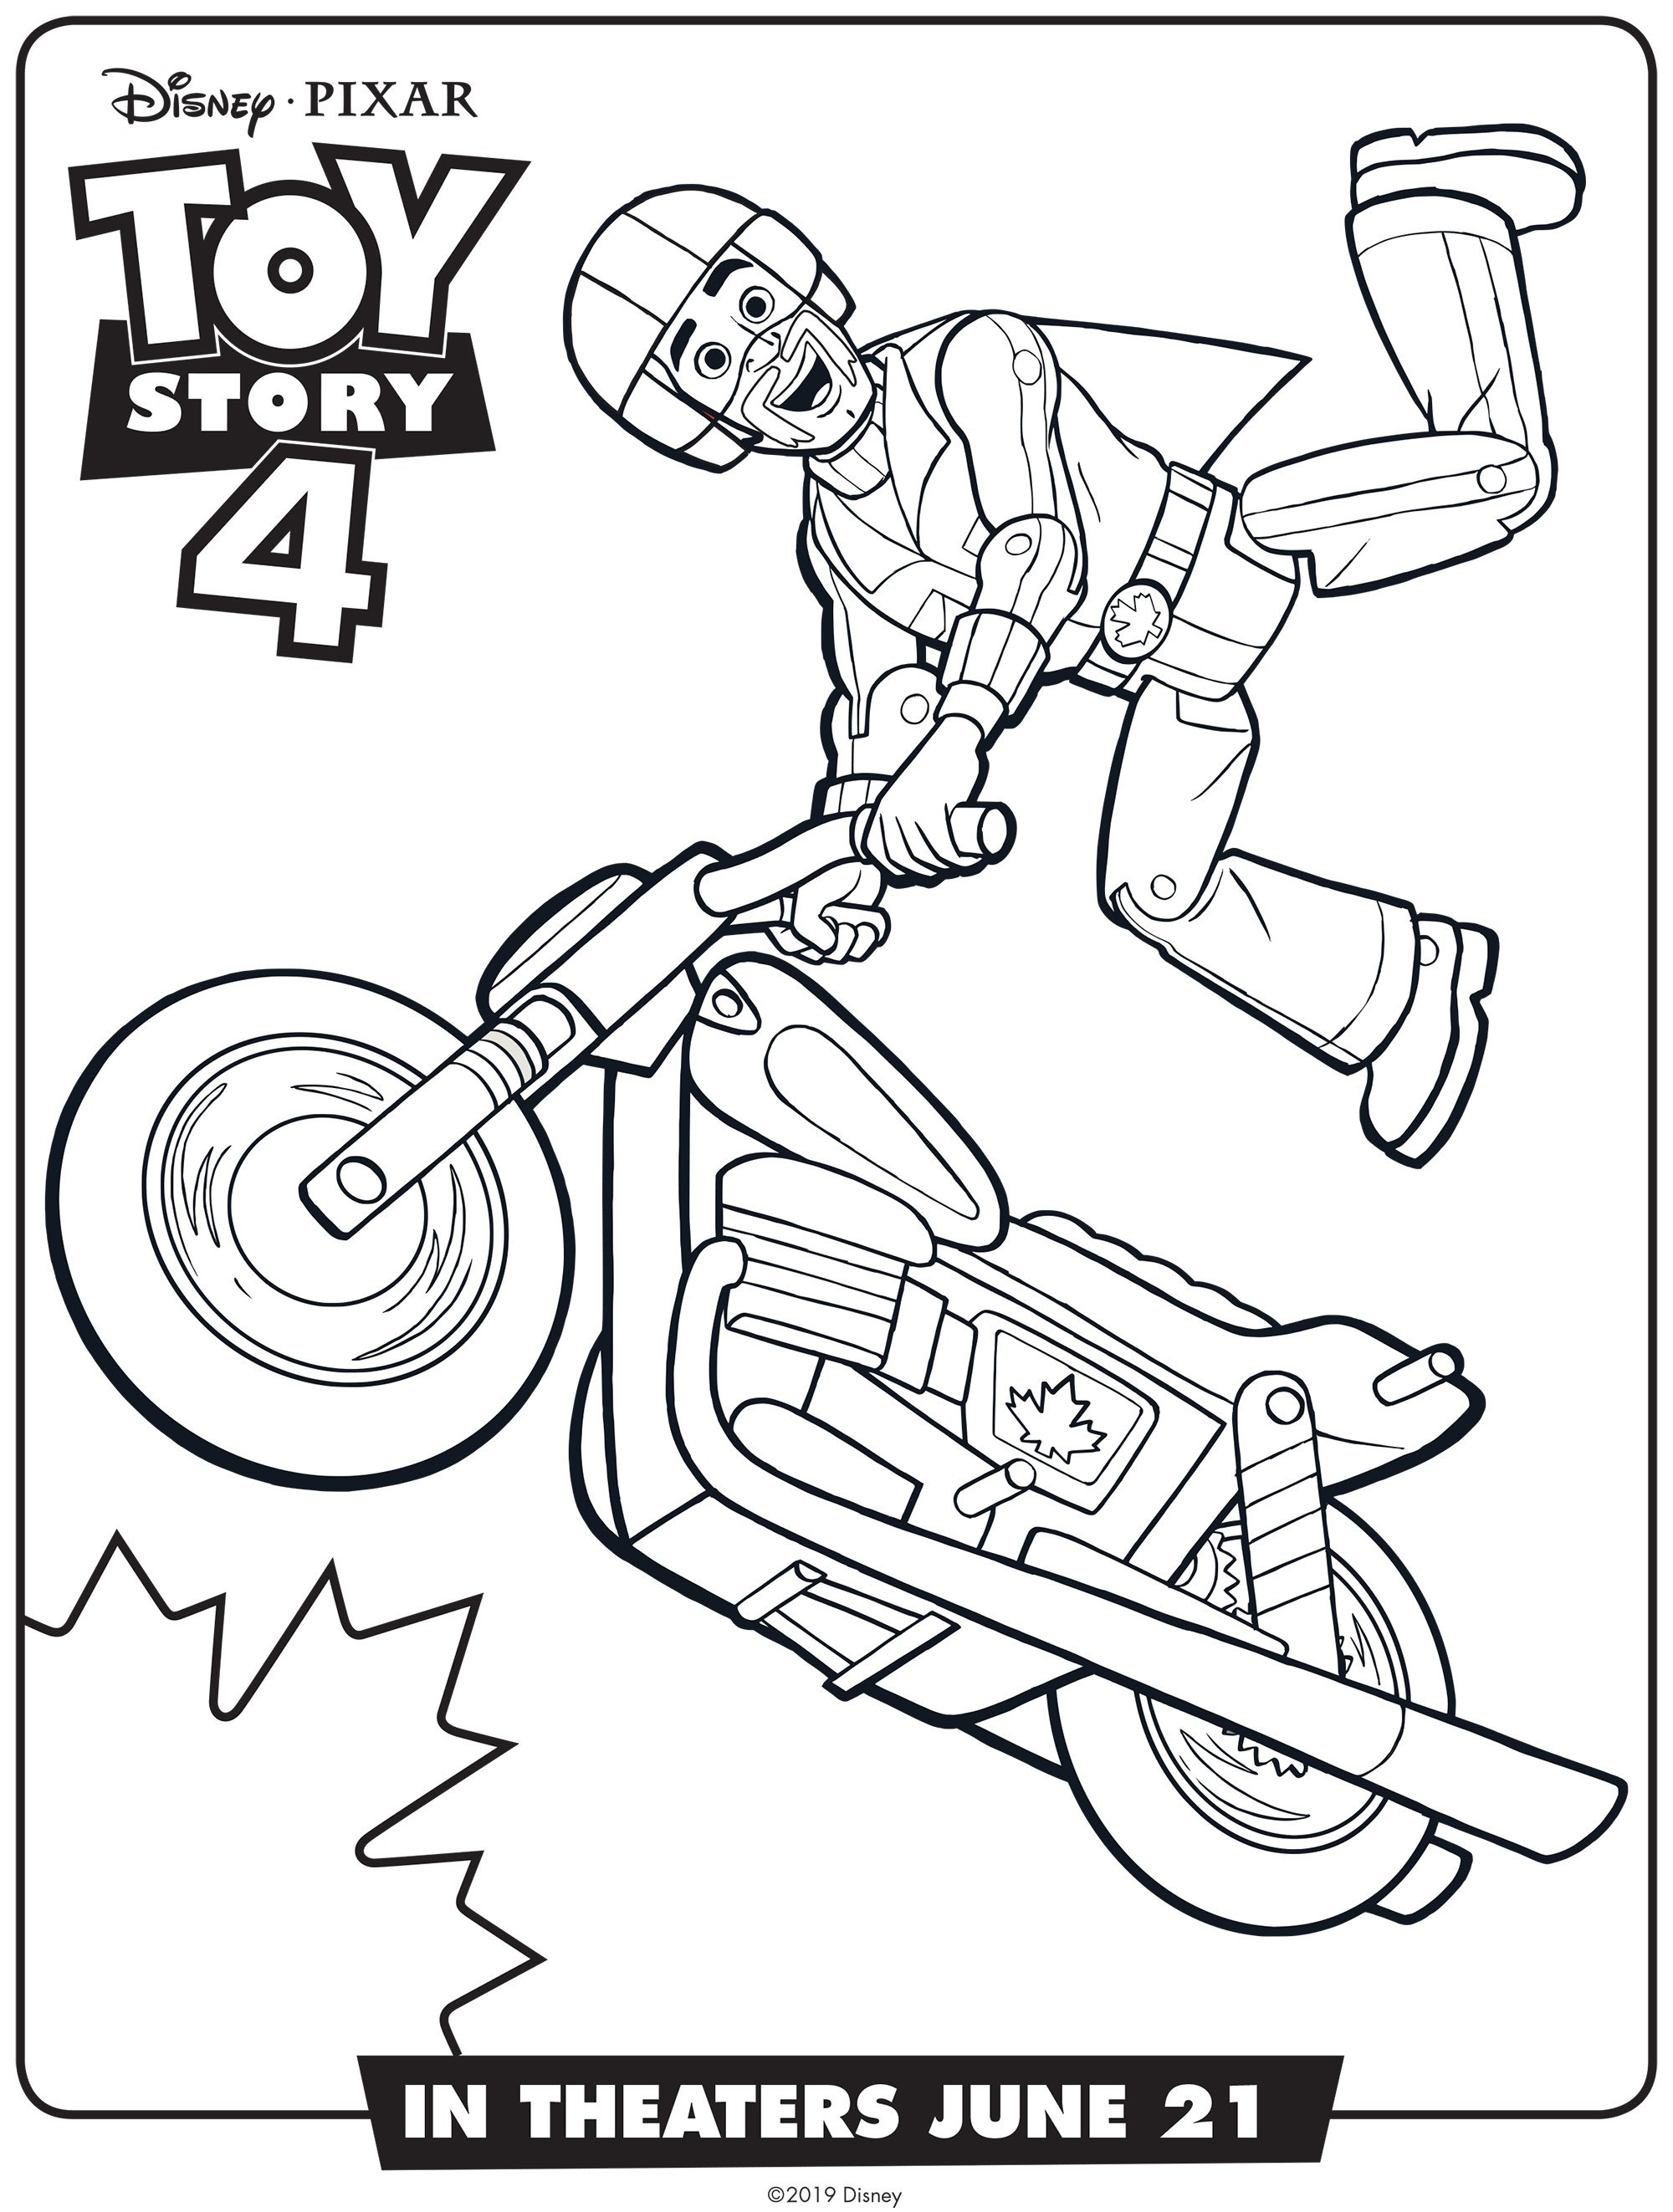 Toy Story 4 Coloring Pages - Coloring Home